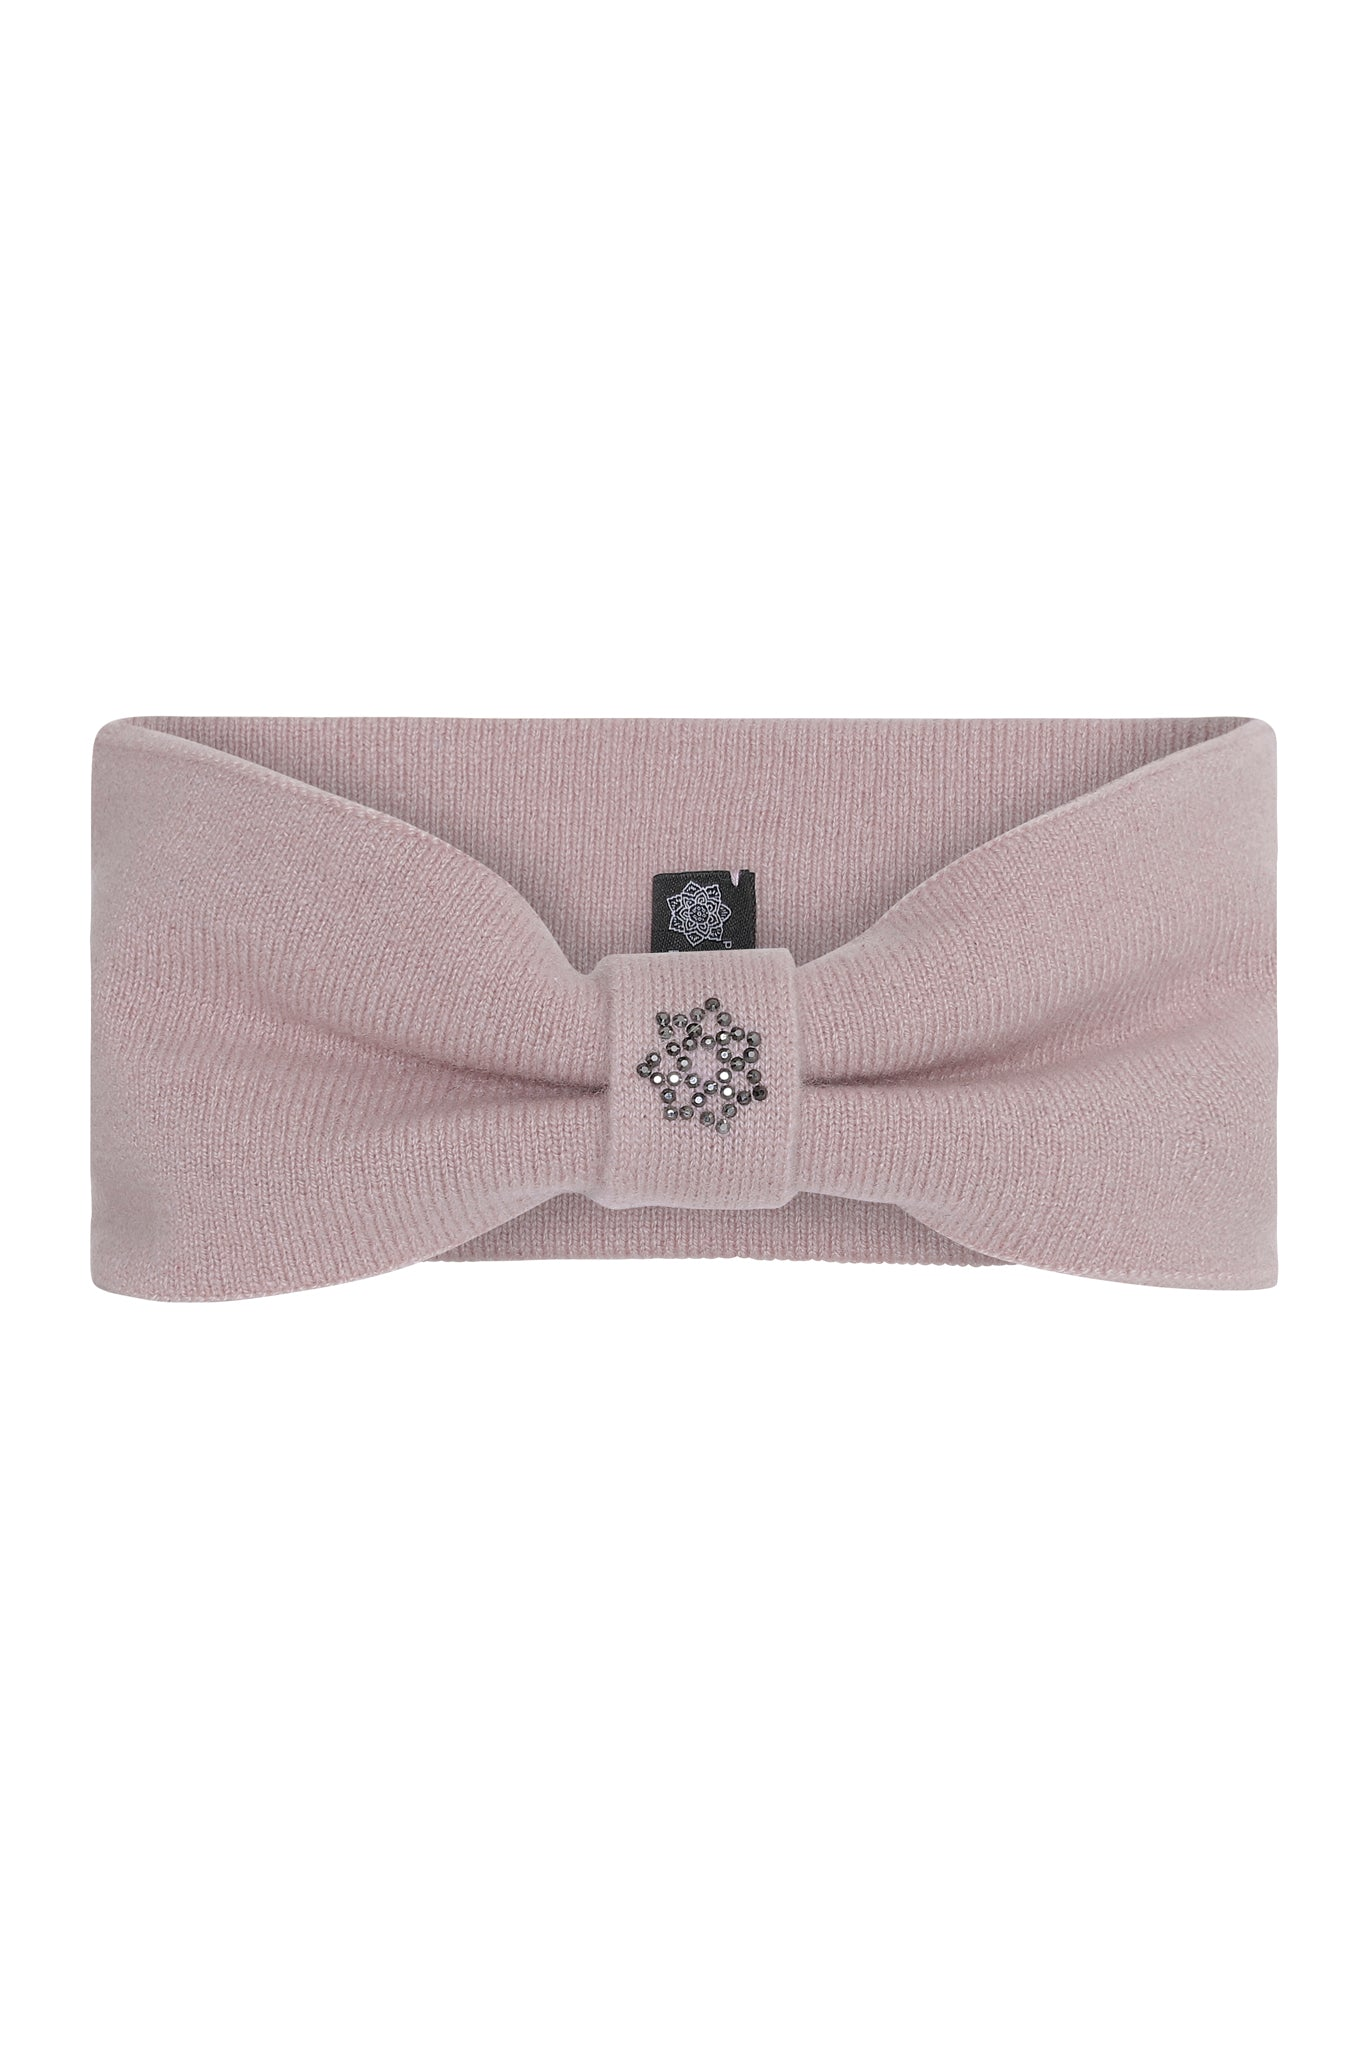 Hedvig - cashmere headband - Dusty Rose